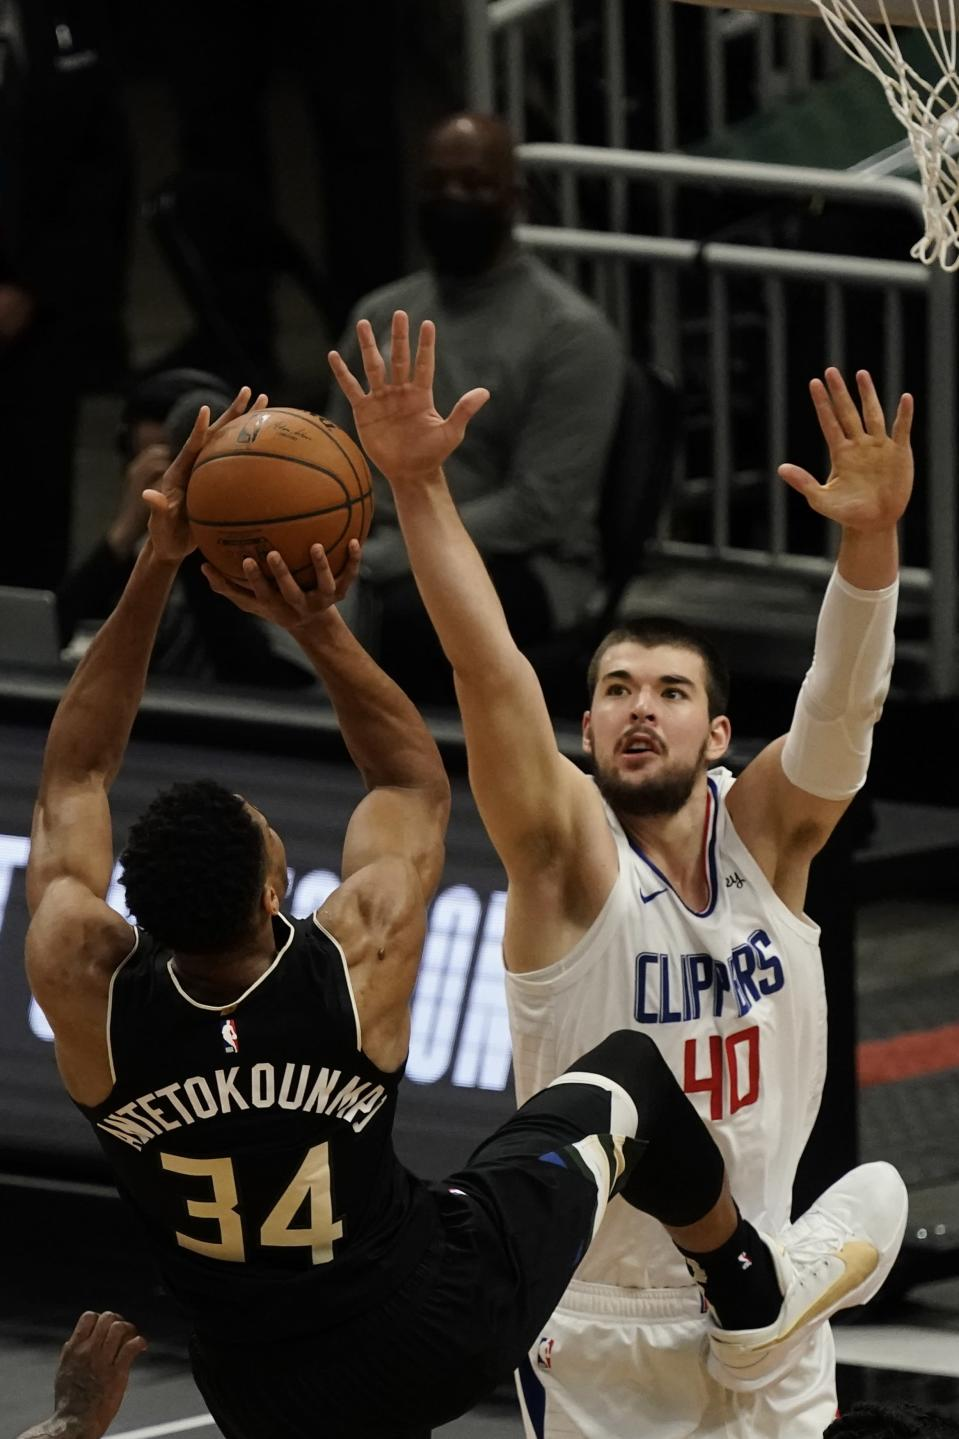 Milwaukee Bucks' Giannis Antetokounmpo is fouled as he shoots against LA Clippers' Ivica Zubac during the first half of an NBA basketball game Sunday, Feb. 28, 2021, in Milwaukee. (AP Photo/Morry Gash)